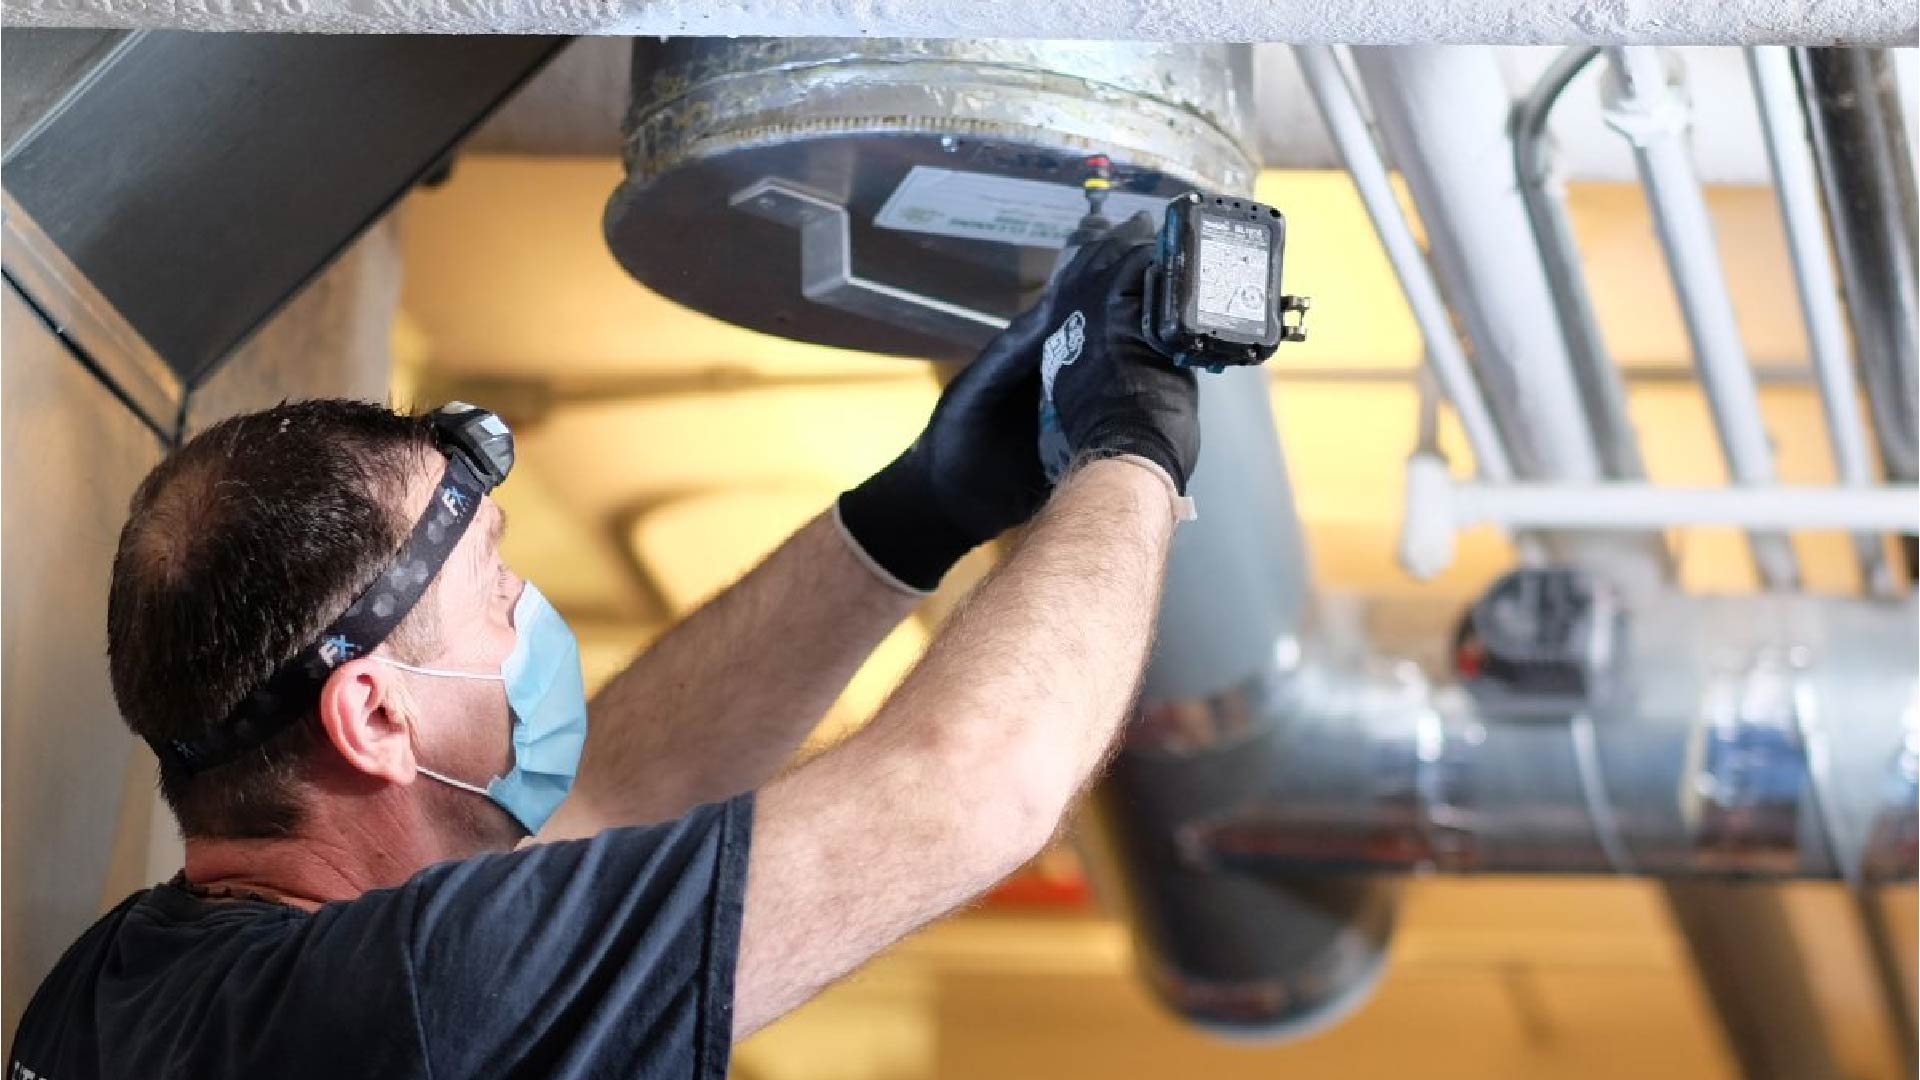 Commercial Air Duct Cleaning Cost | S & R Air Duct Cleaning Services